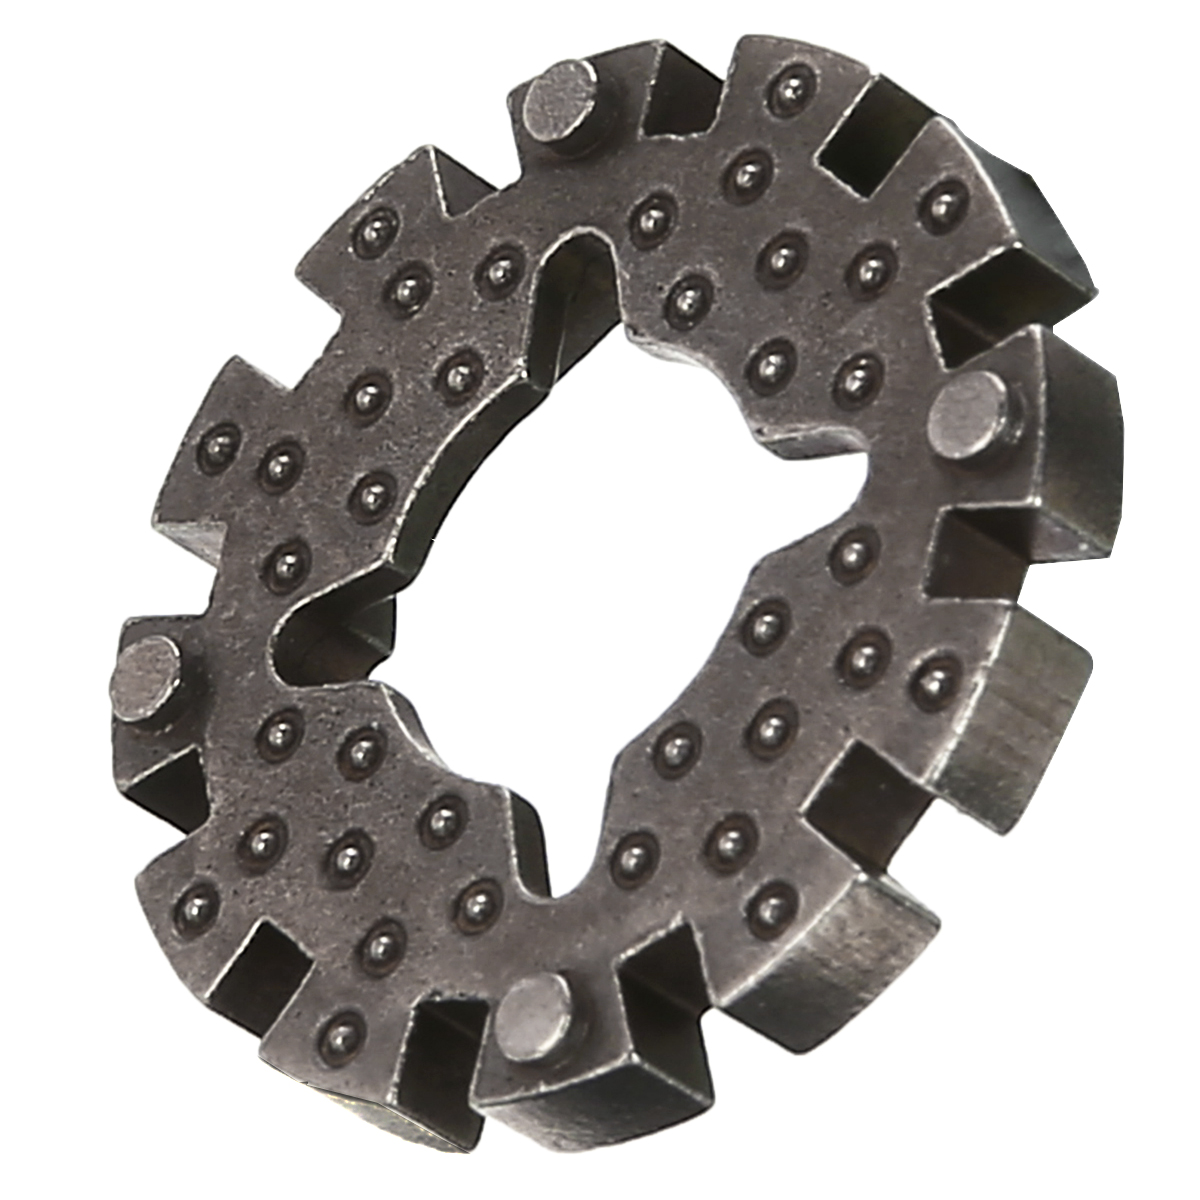 Multi Function Woodworking Oscillating Saw Blade Adapter Universal Shank Oscillating Blade Adapter Useful Power Tool Accessories